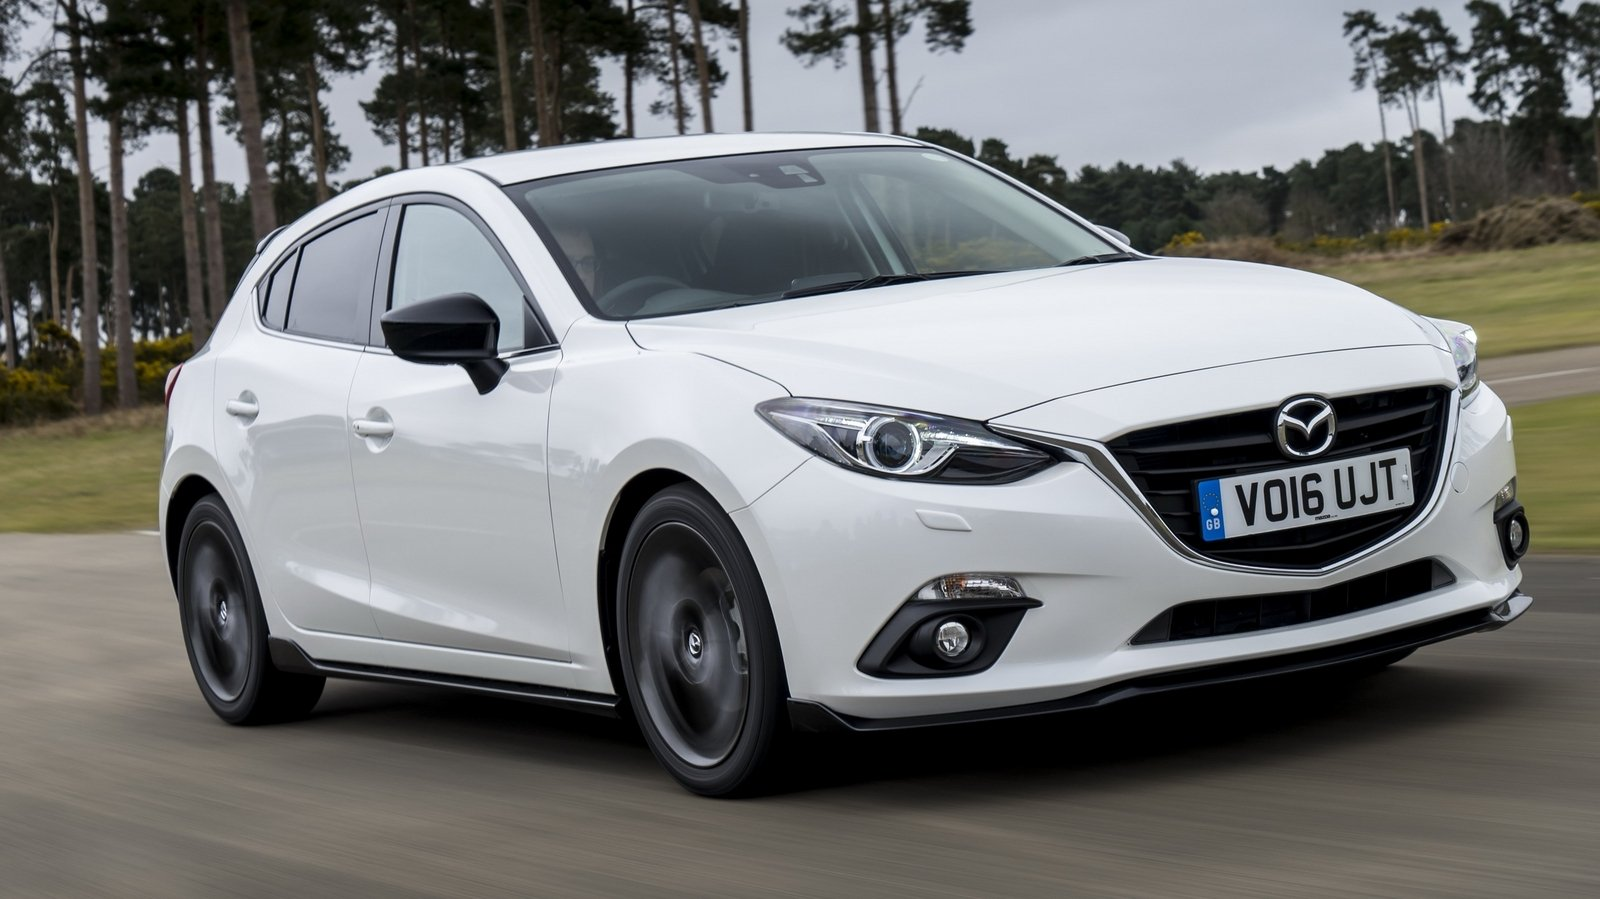 2016 mazda3 sport black special edition review - top speed